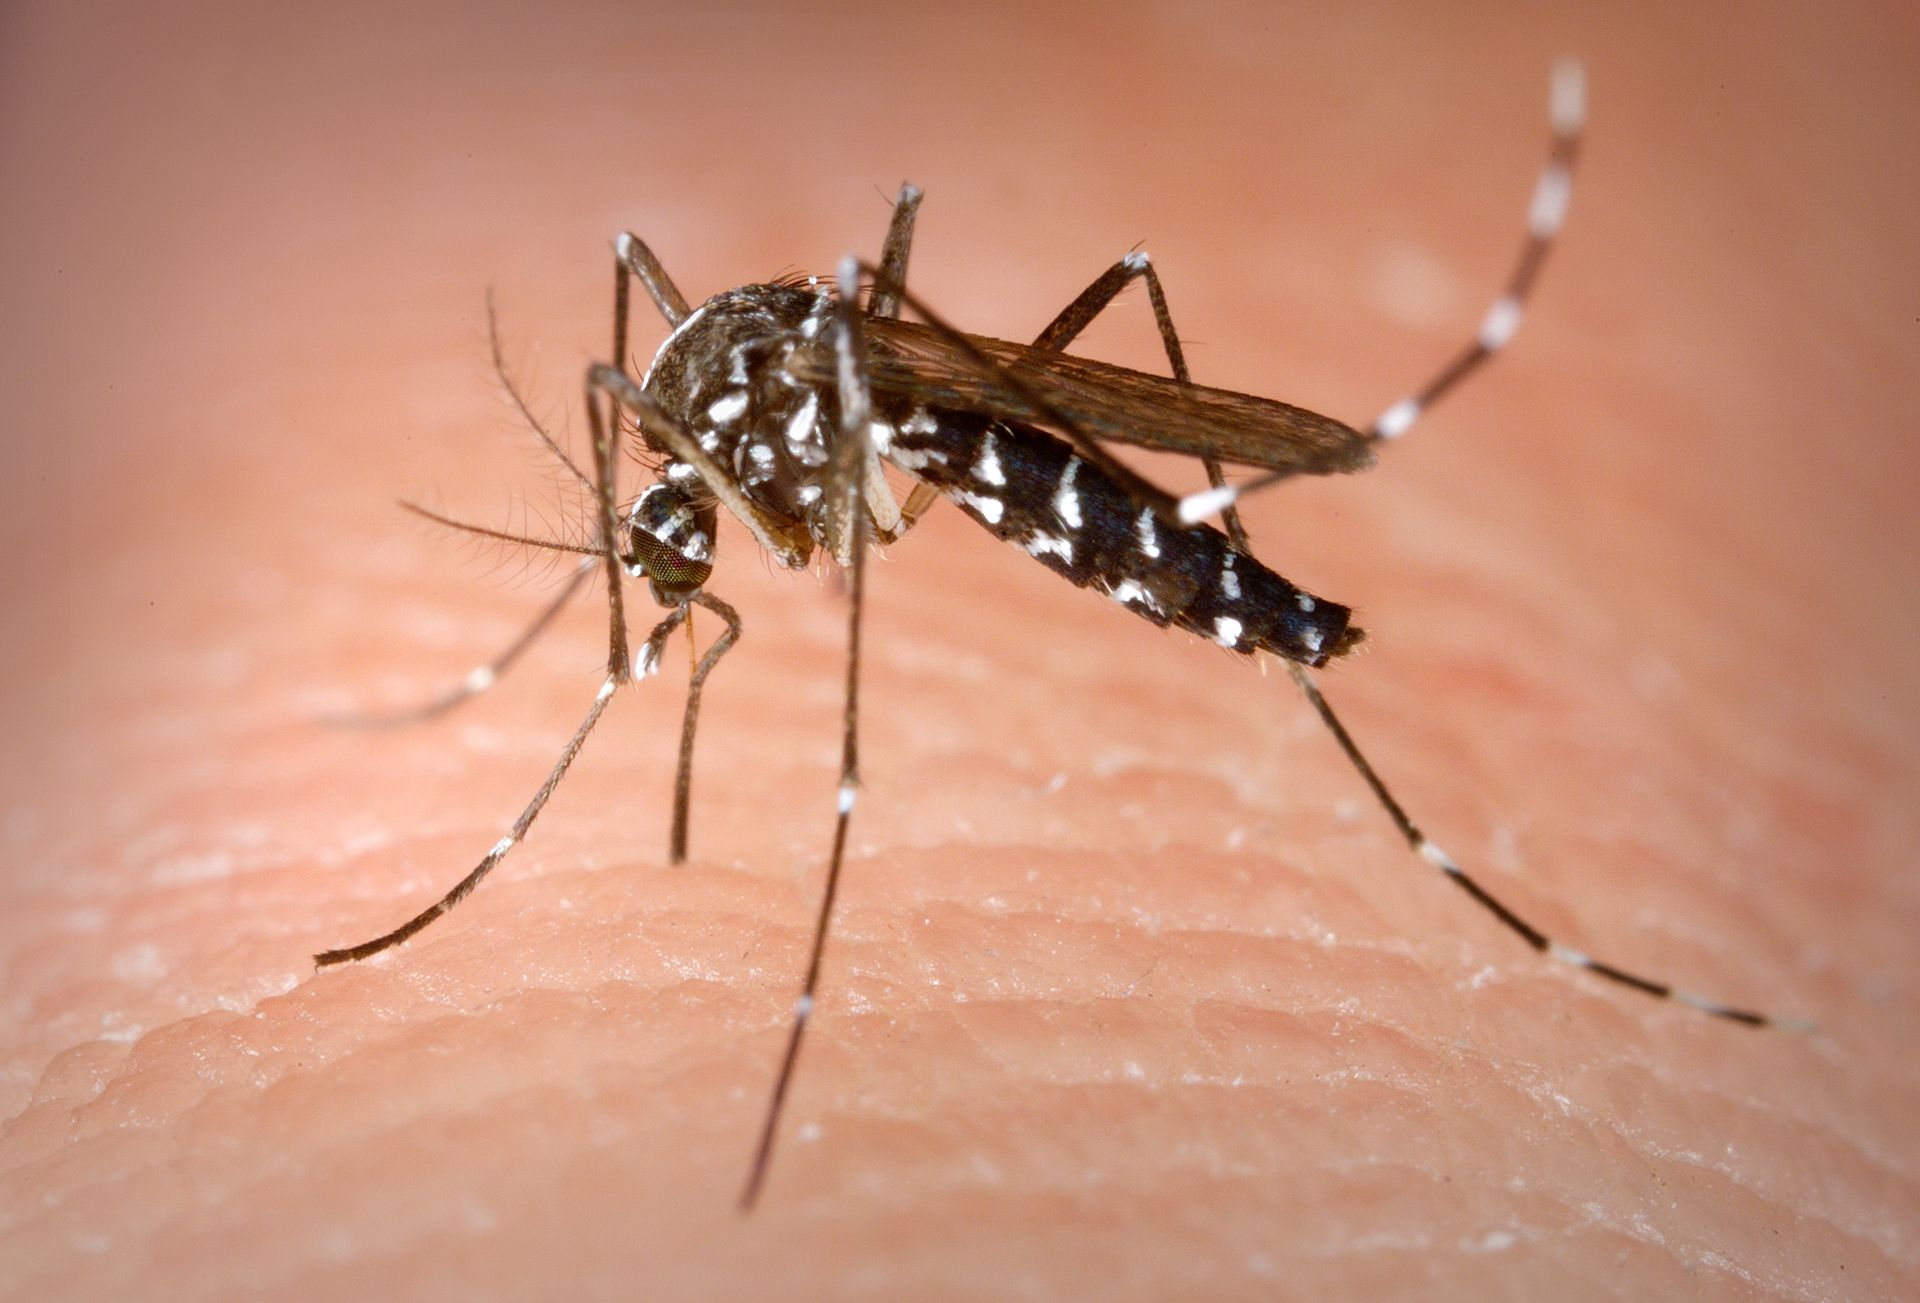 Image shows an Aedes albopictus mosquito preparing to bite a human